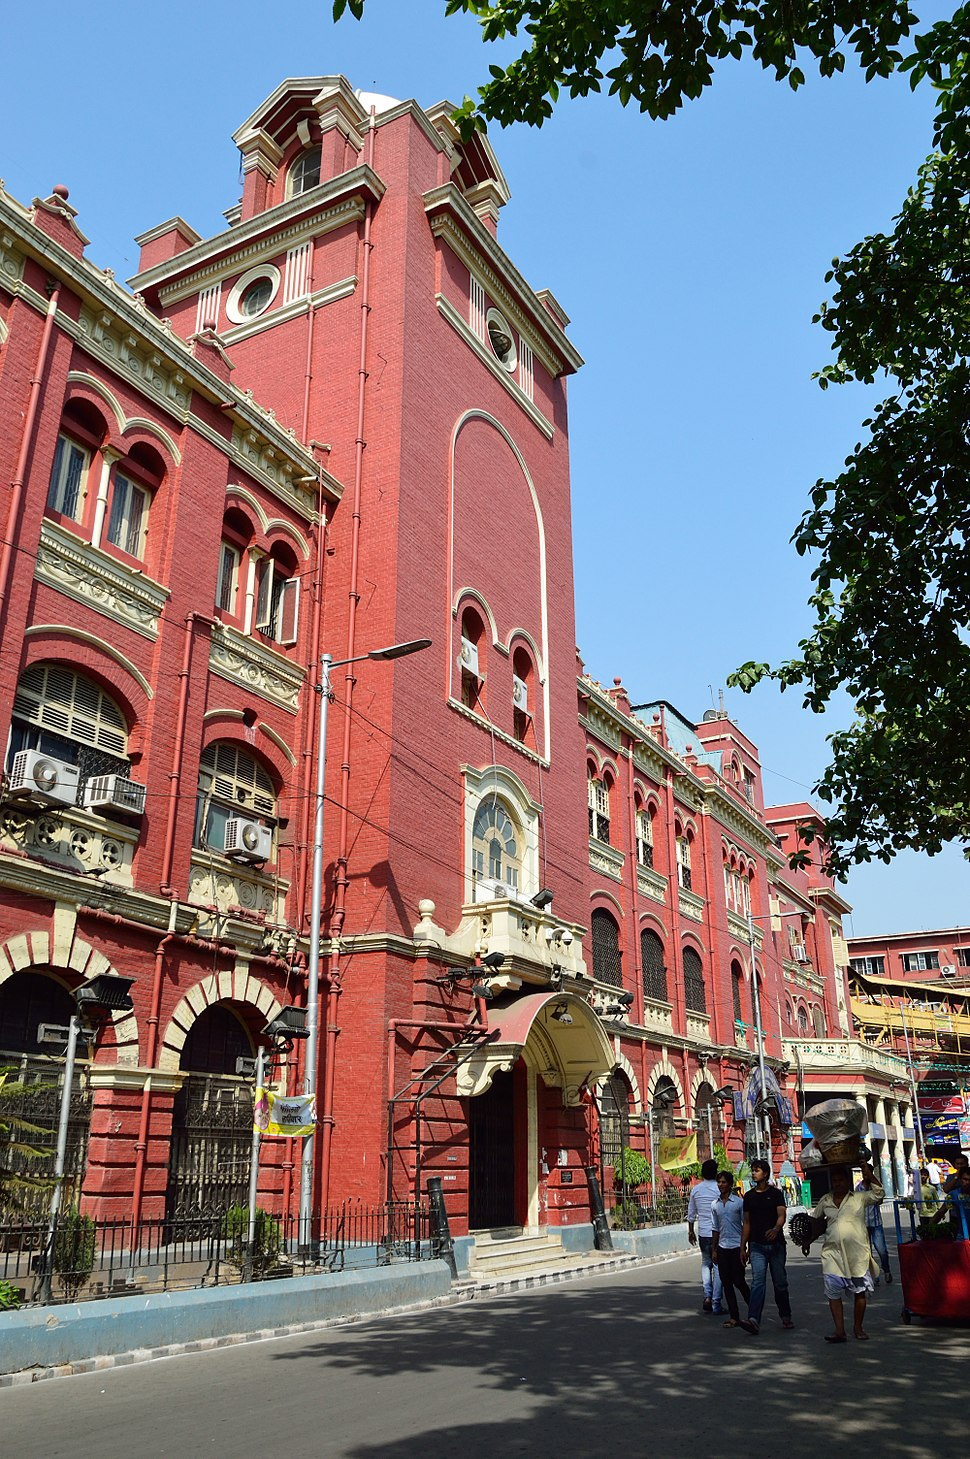 Kolkata Municipal Corporation - Kolkata 2013-04-15 6065